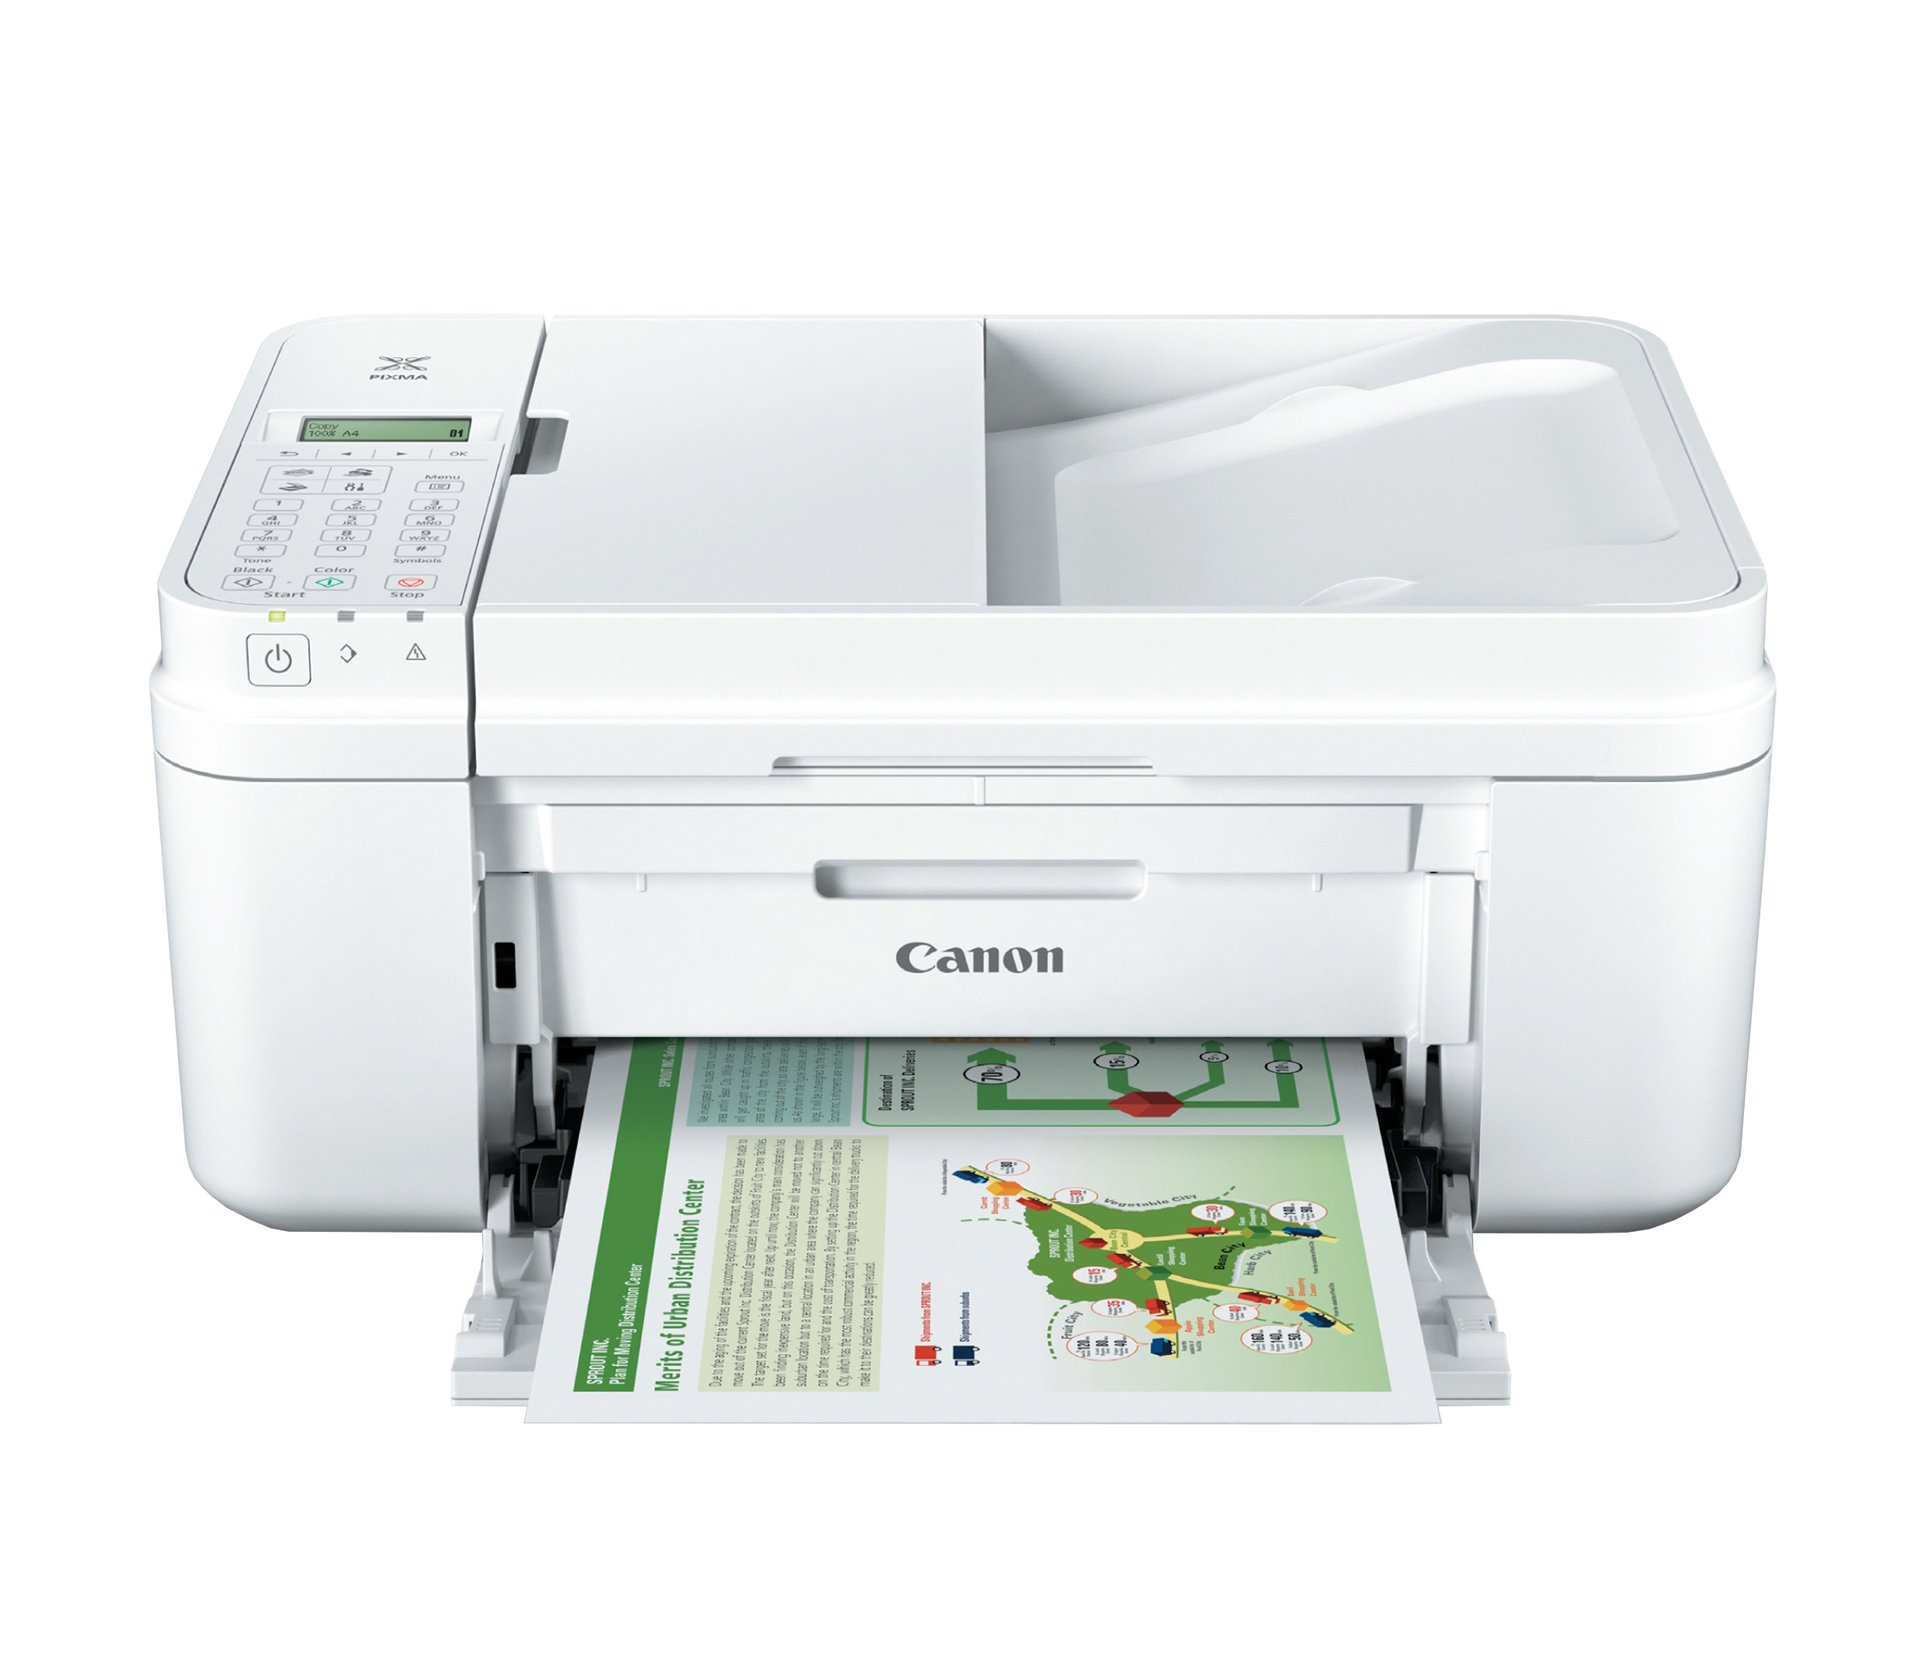 Canon PIXMA MX492, Wireless All-In-One Small Printer with Mobile or Tablet Printing, AirPrint and Google Cloud Print Compatible, White by Canon (Image #1)